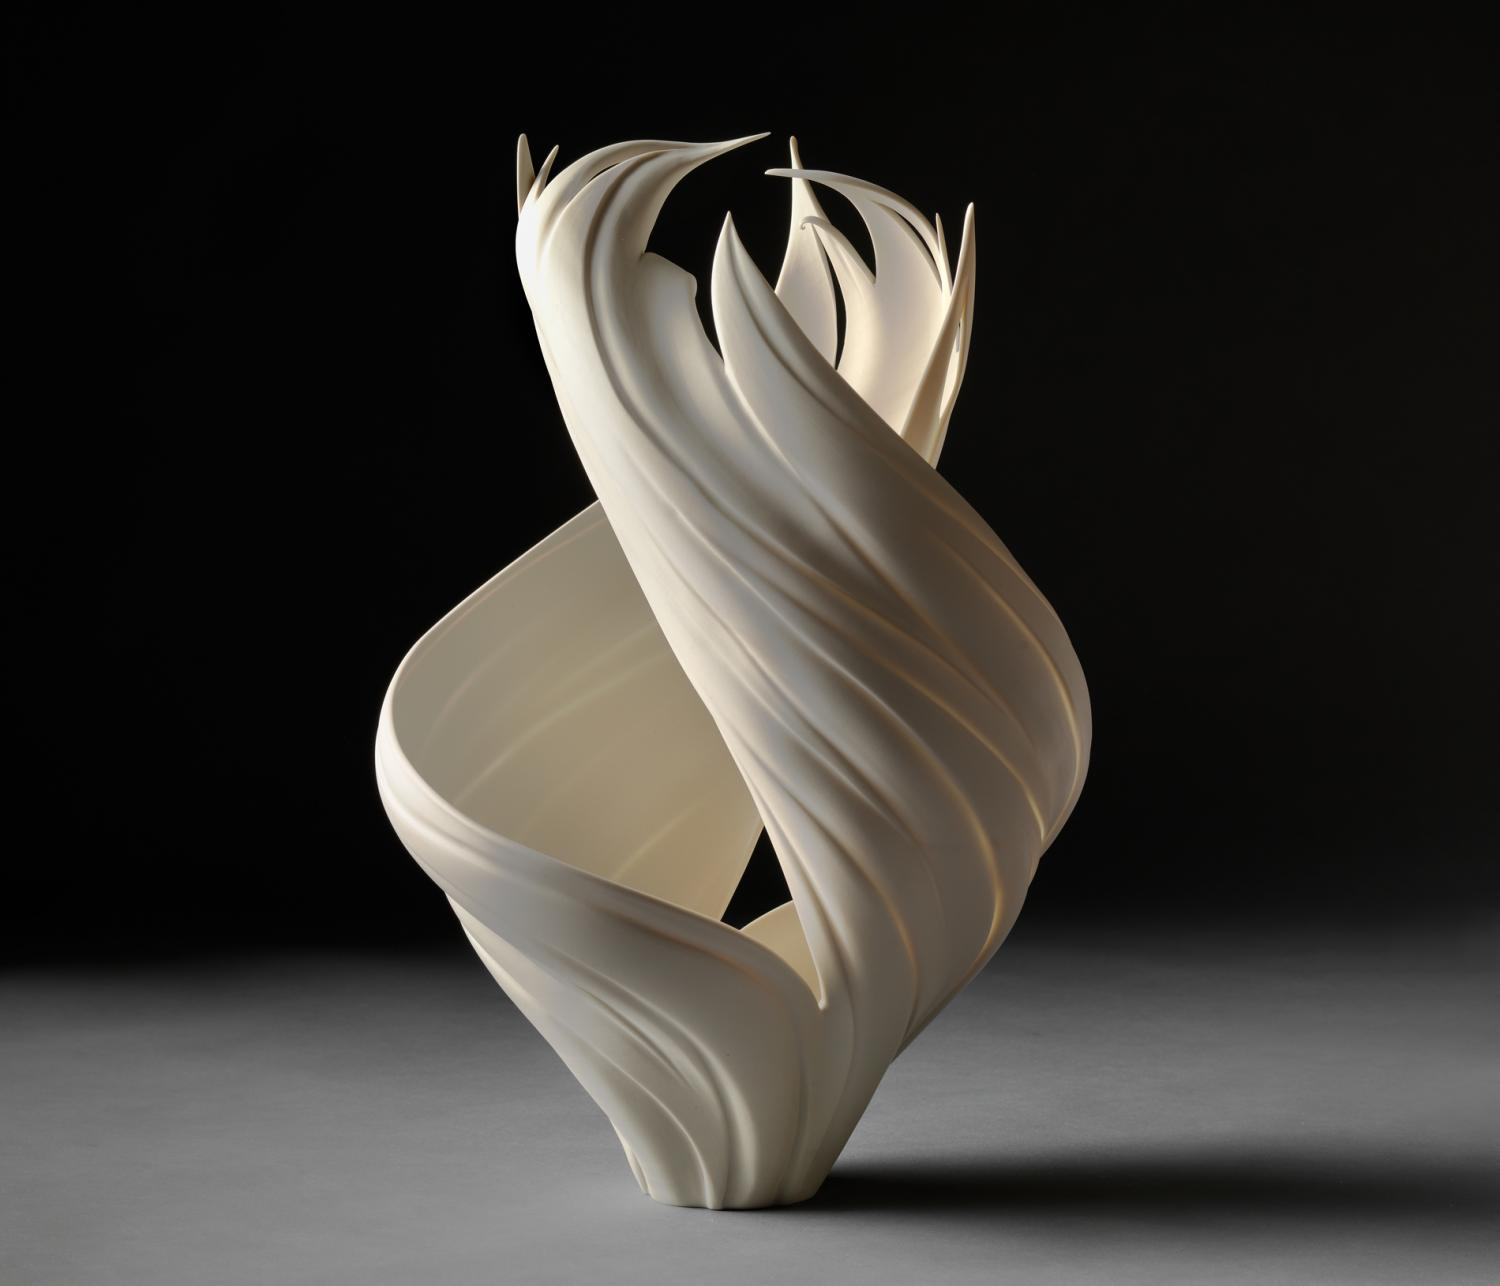 Jennifer McCurdy, Vortex Vessel